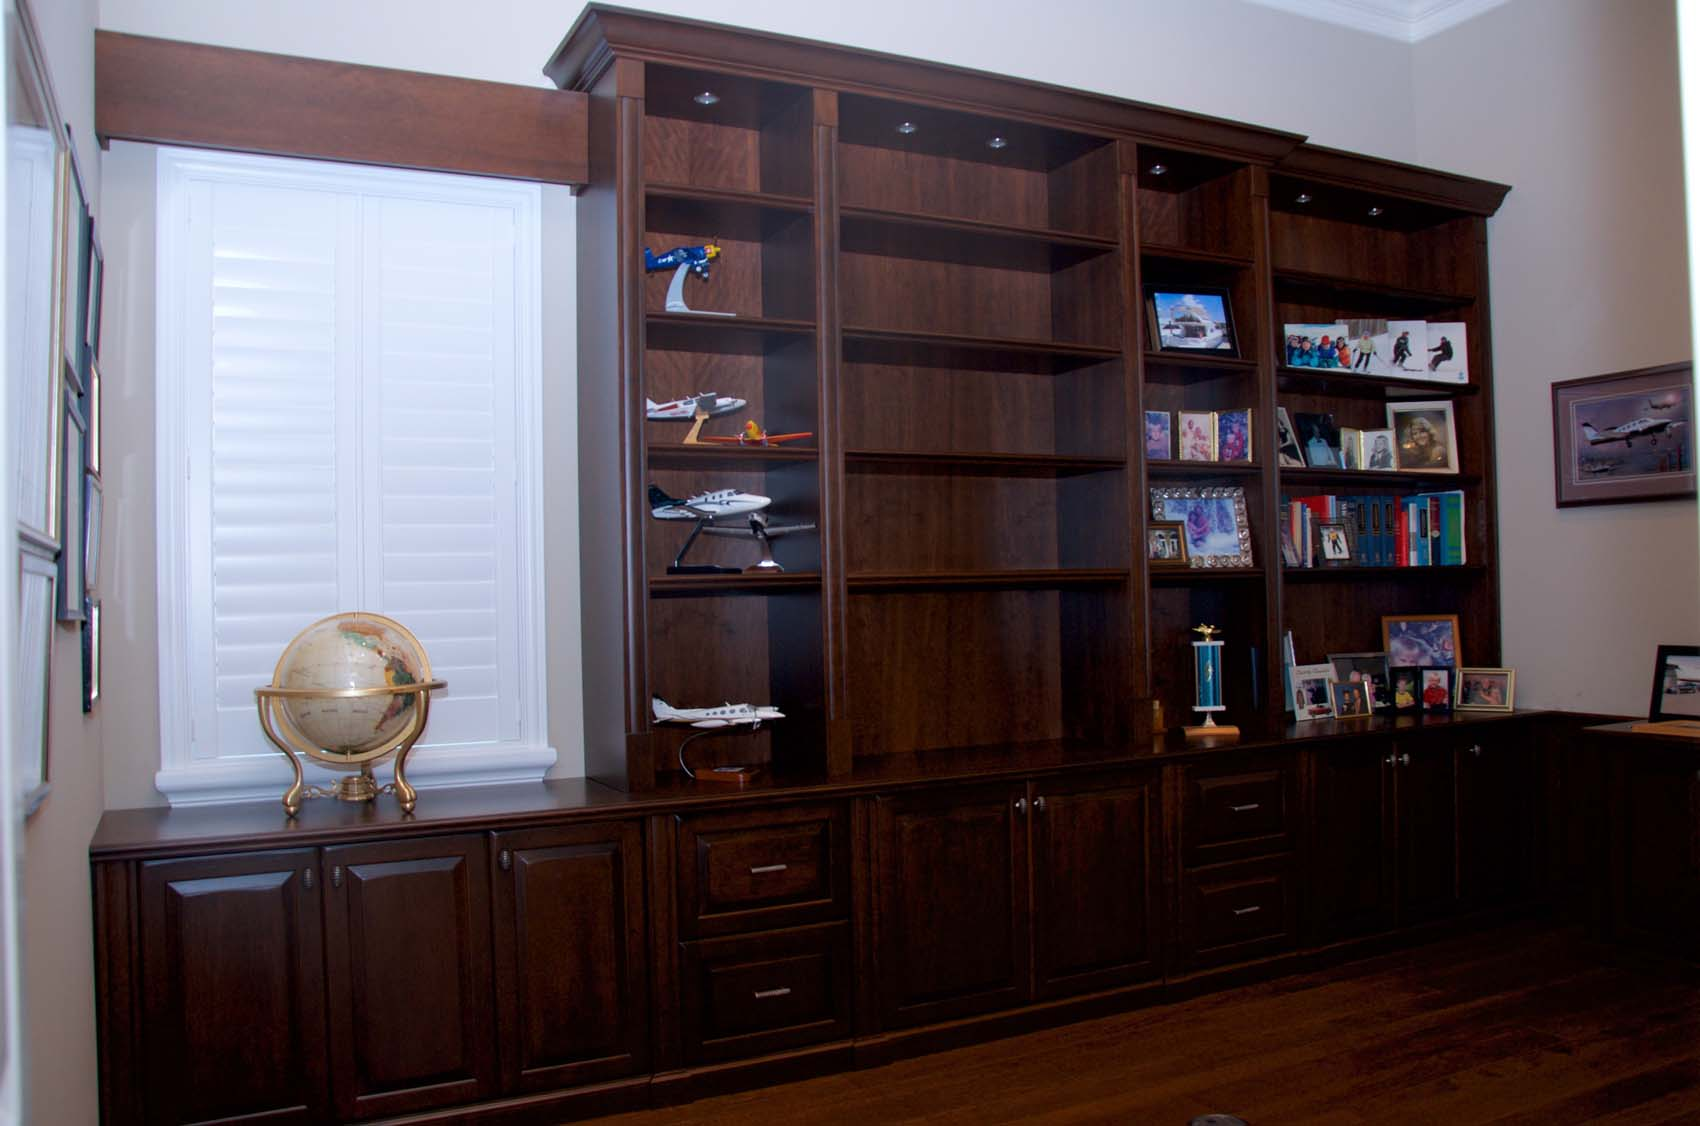 Home office furniture west palm 28 images home office furniture west palm home office home - Home office furniture west palm beach ...